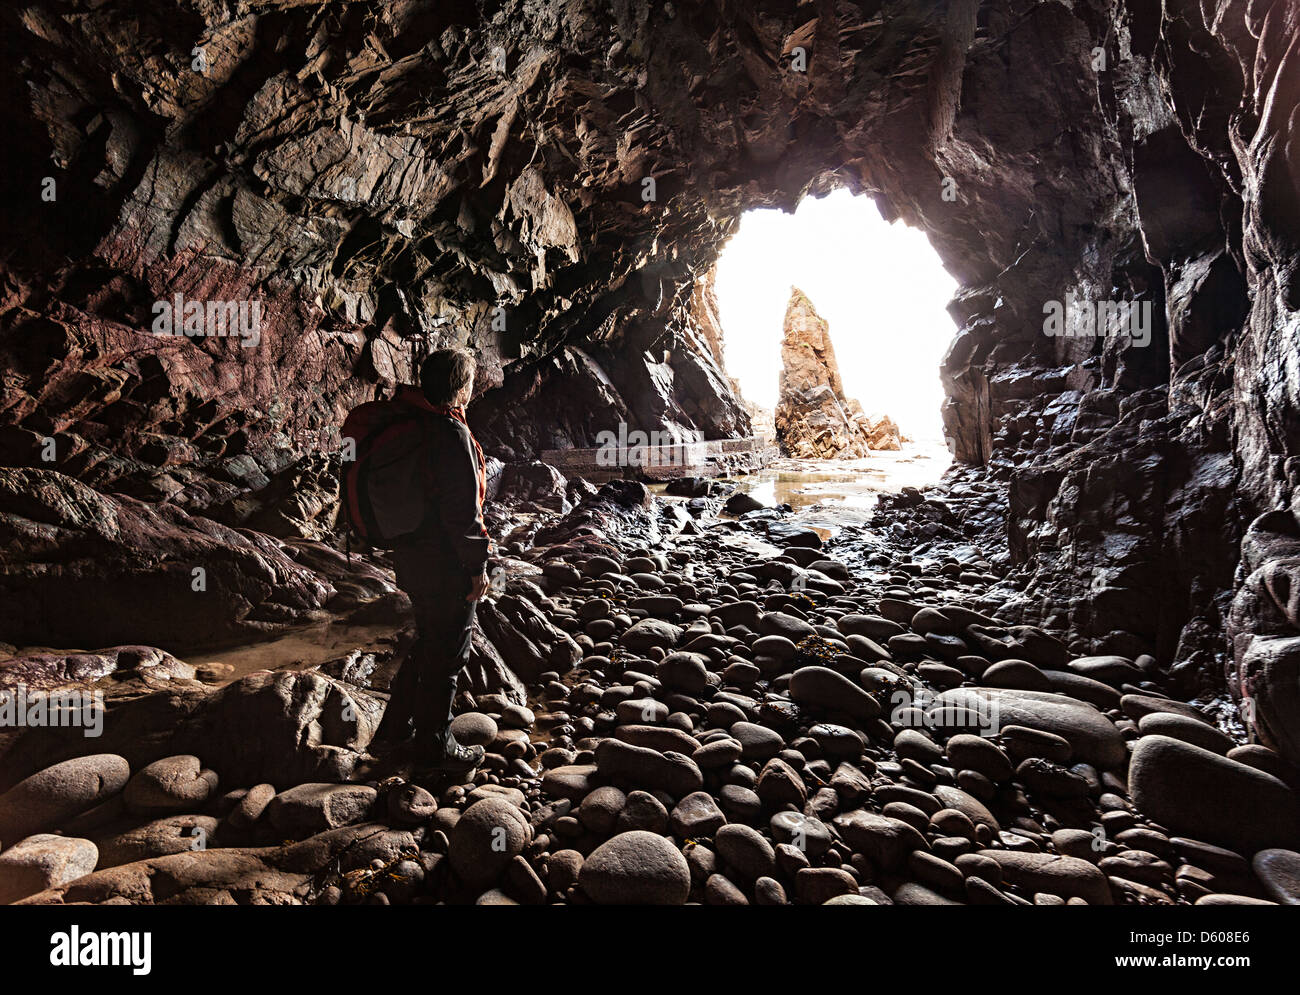 Plemont Cave and Needle Rock, Jersey, Channel Islands, UK - Stock Image